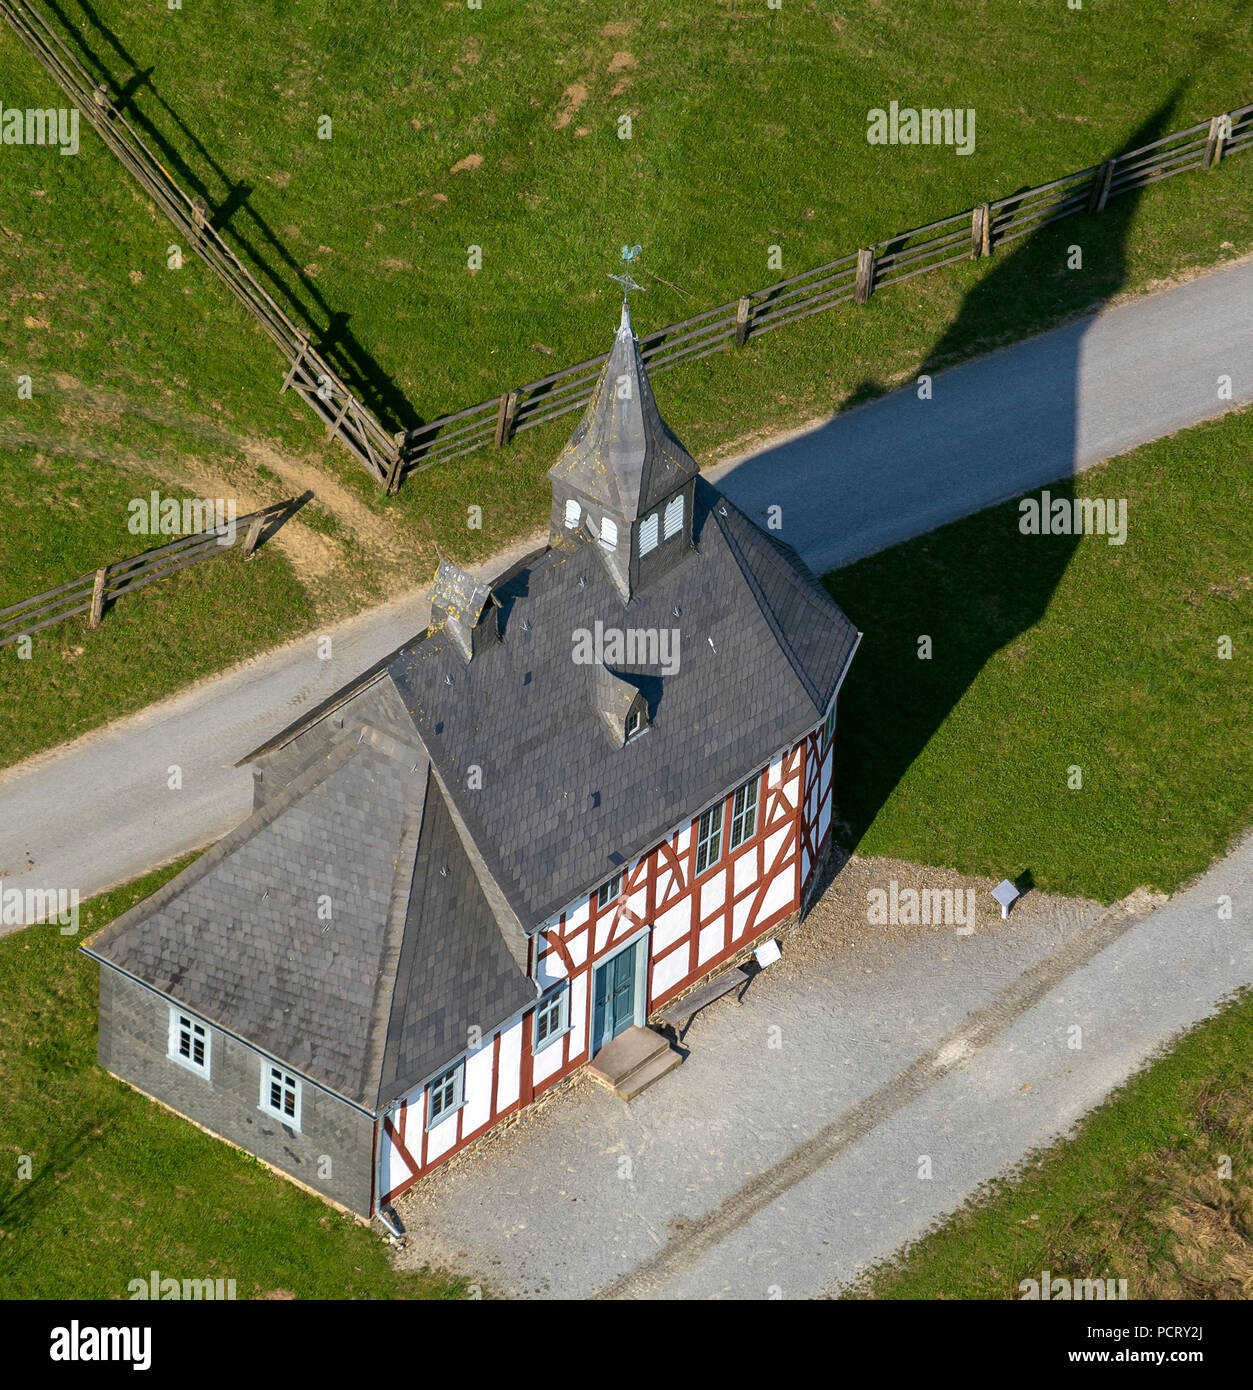 Small village church, half-timbered houses in the Lippische Open Air Museum Detmold, LWL Museum Detmold, country organisation Westfalen-Lippe, aerial photo of Detmold Stock Photo